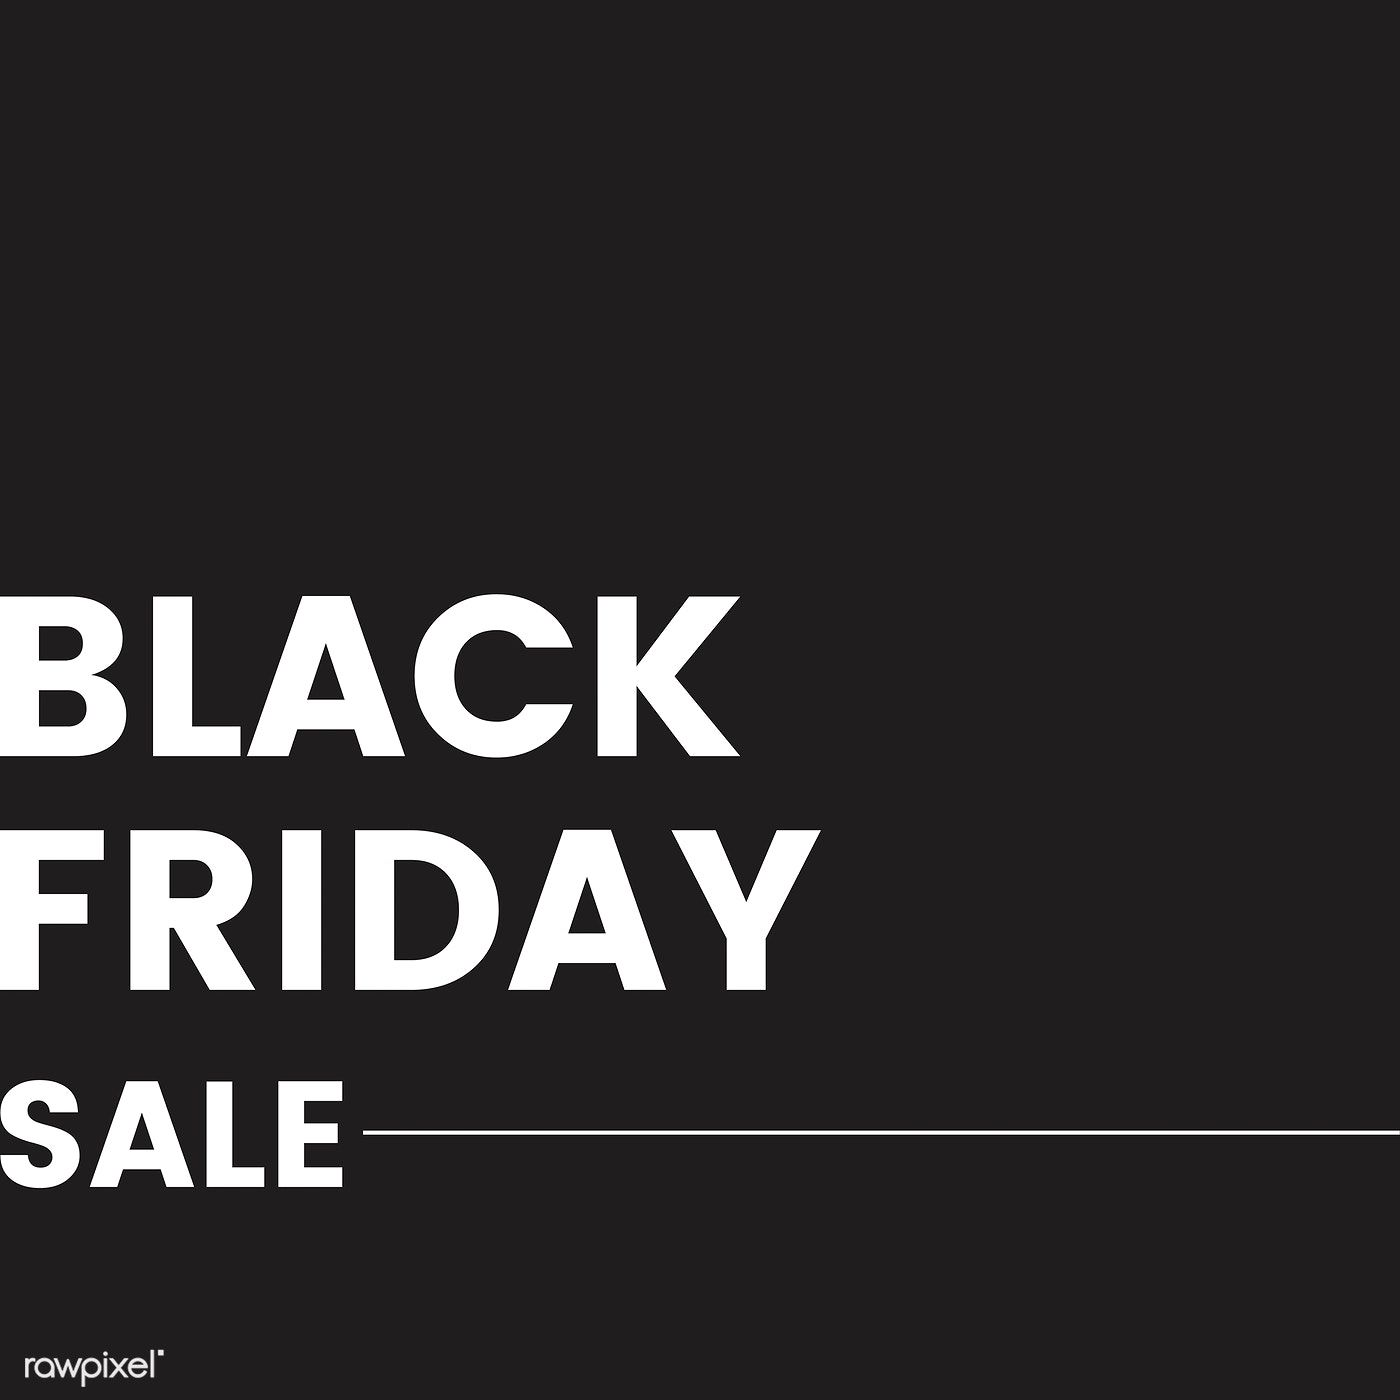 Black Friday Sale Announcement Sign Vector Free Image By Rawpixel Com Sasi Black Friday Design Black Friday Sale Black Friday Sign